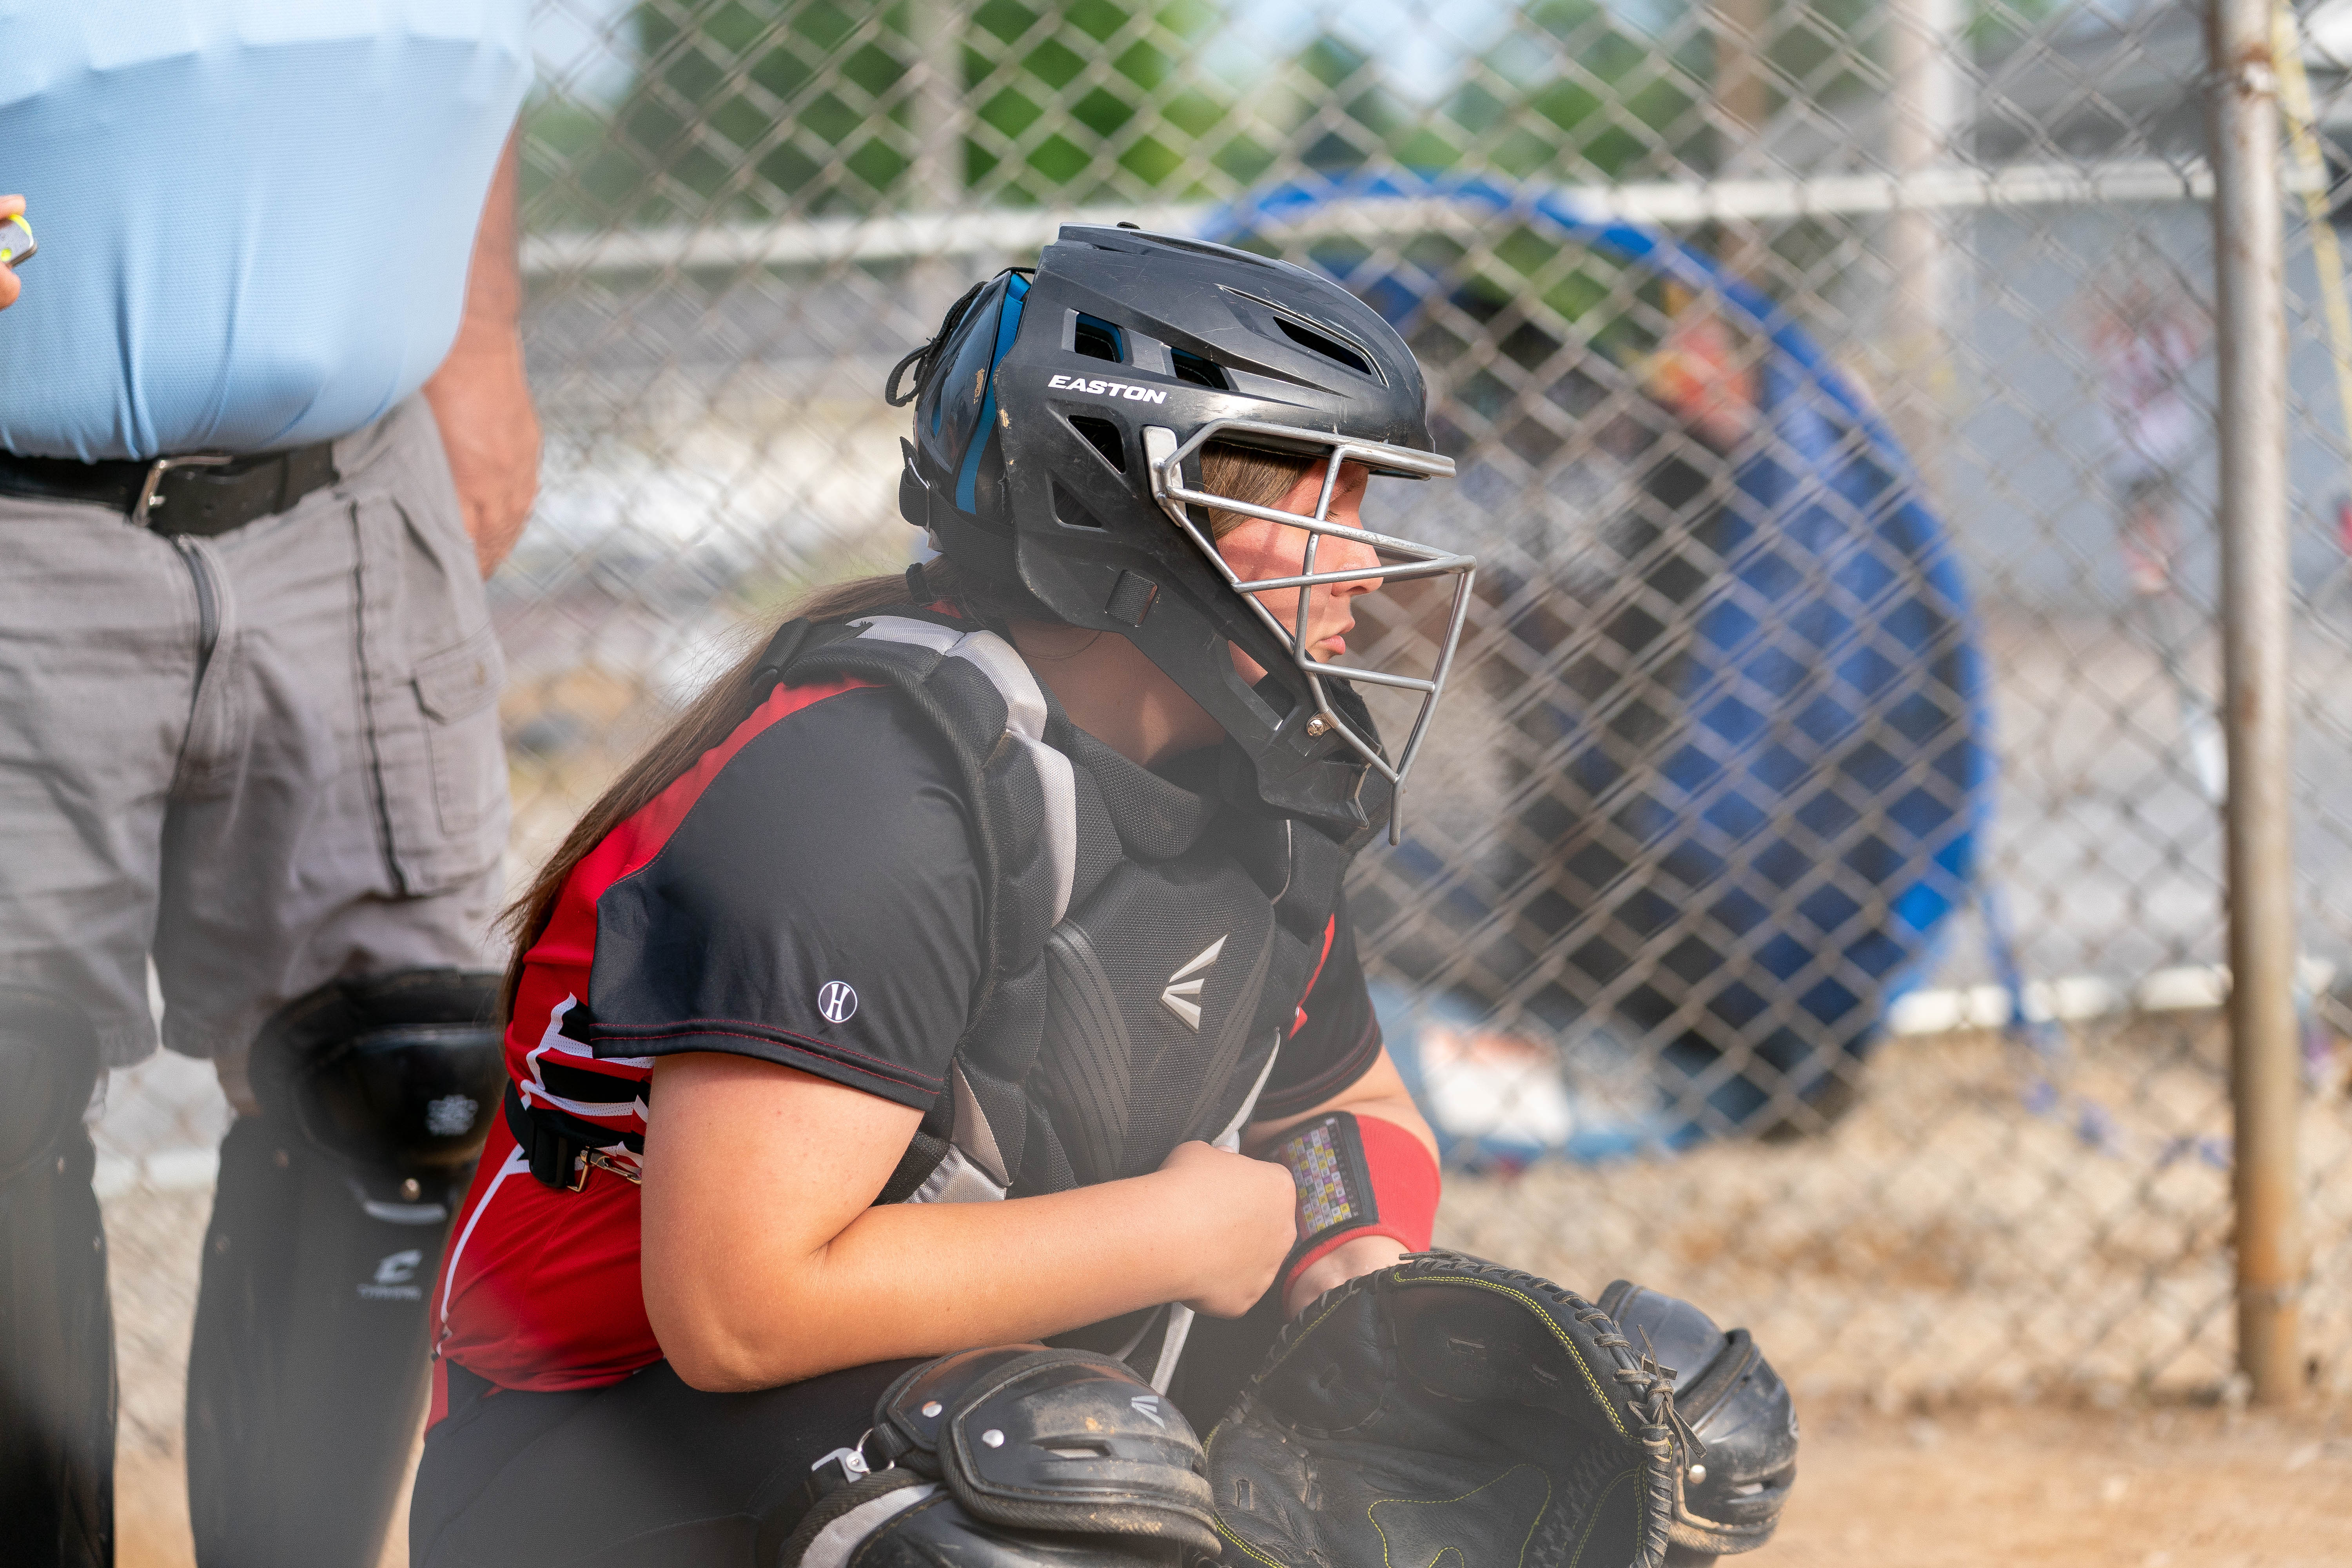 This is the catcher for Charleroi